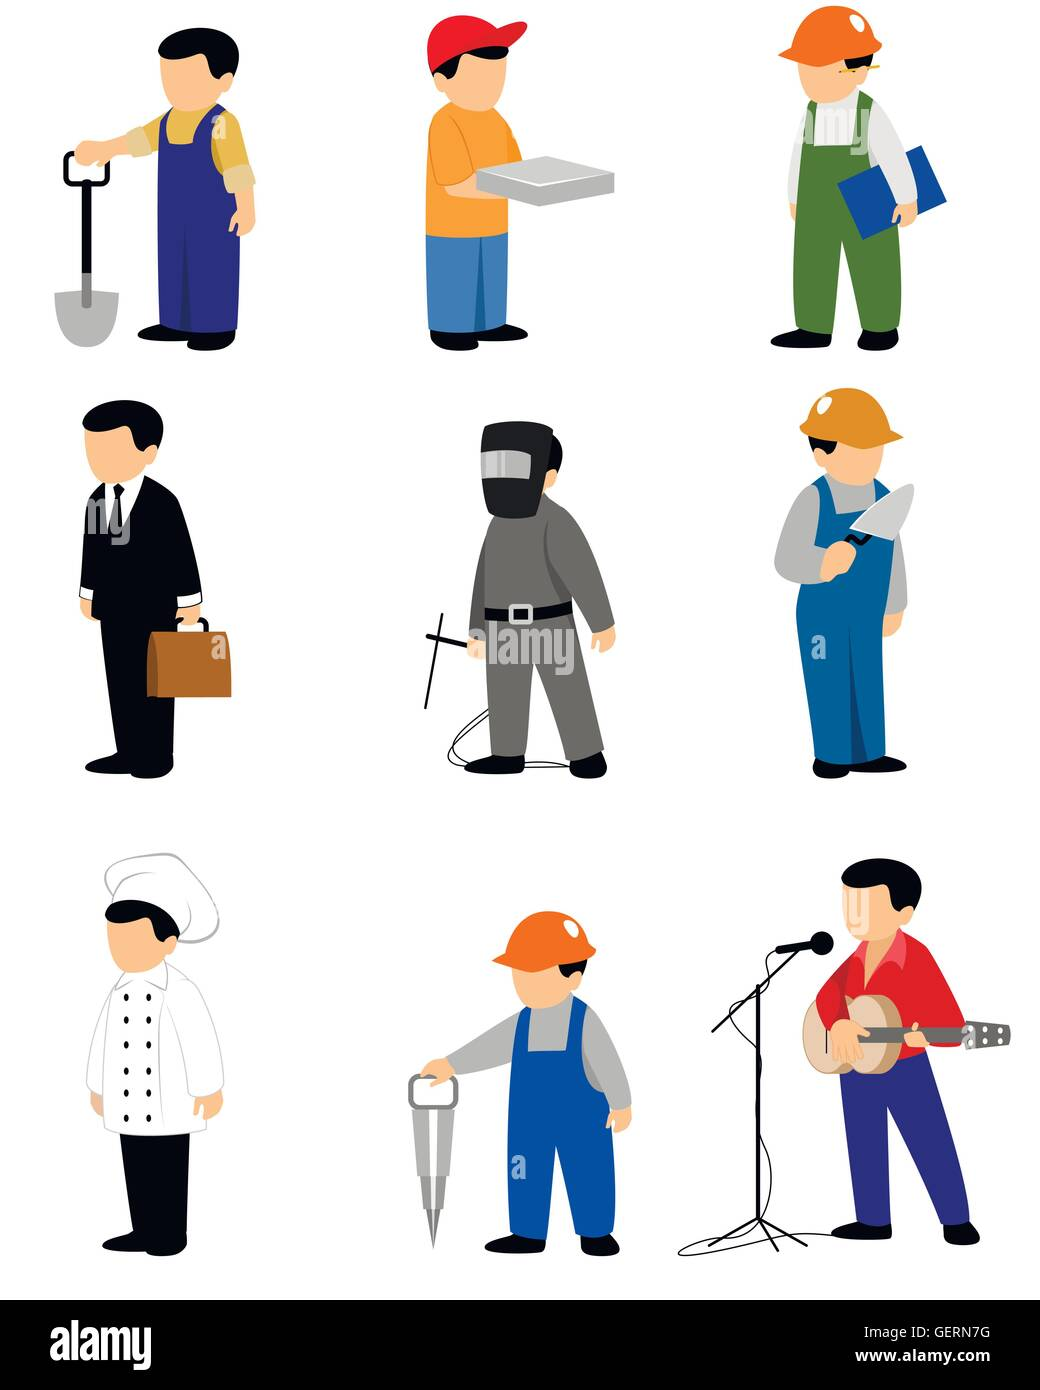 People Occupations Jobs And Community At: Occupations And Work Stock Vector Images